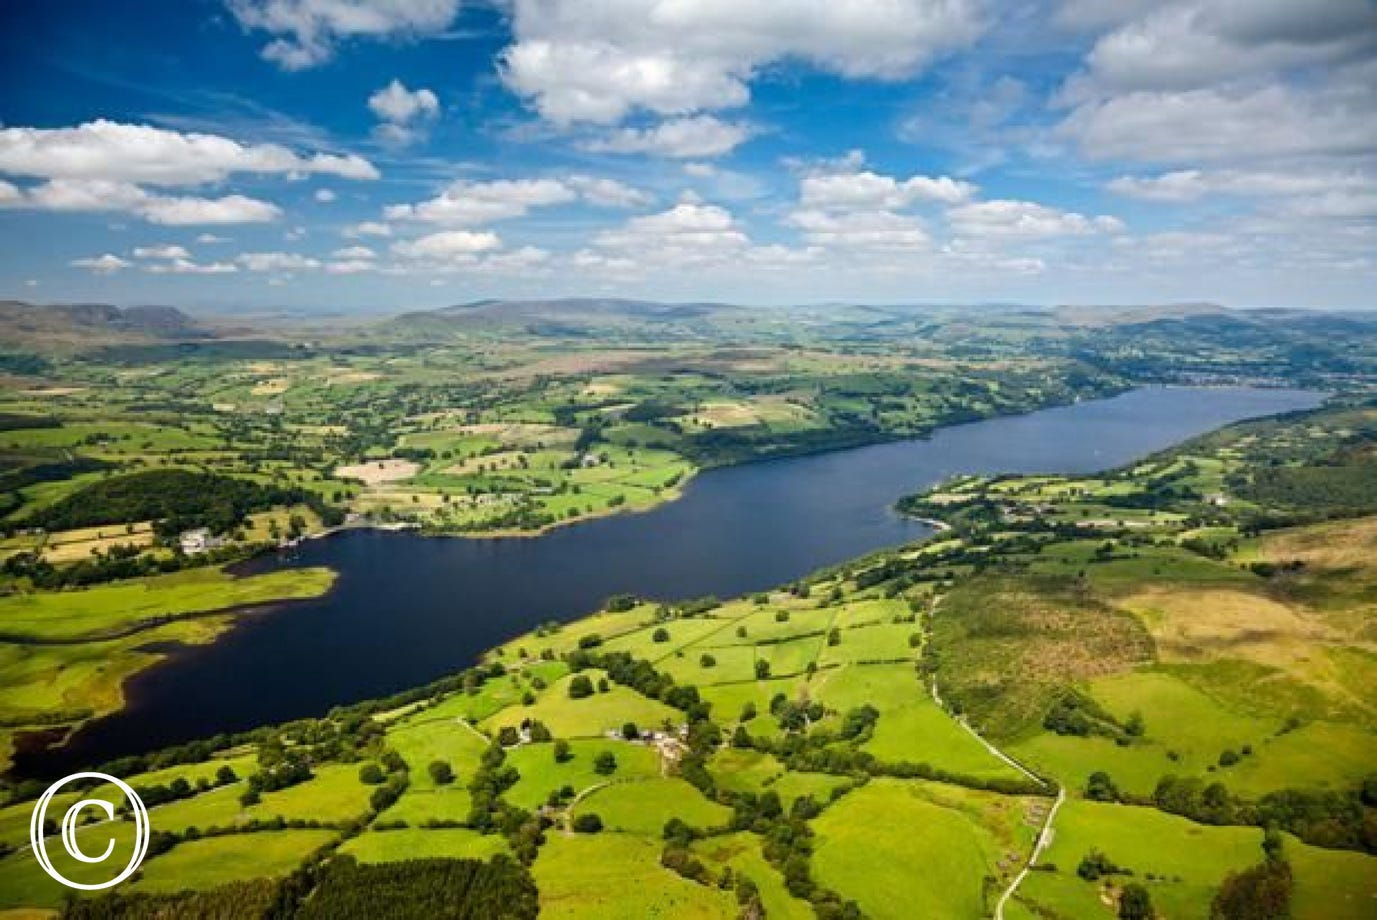 5 miles from your holiday cottage Bala Lake (Llyn Tegid) is the largest natural lake in Wales